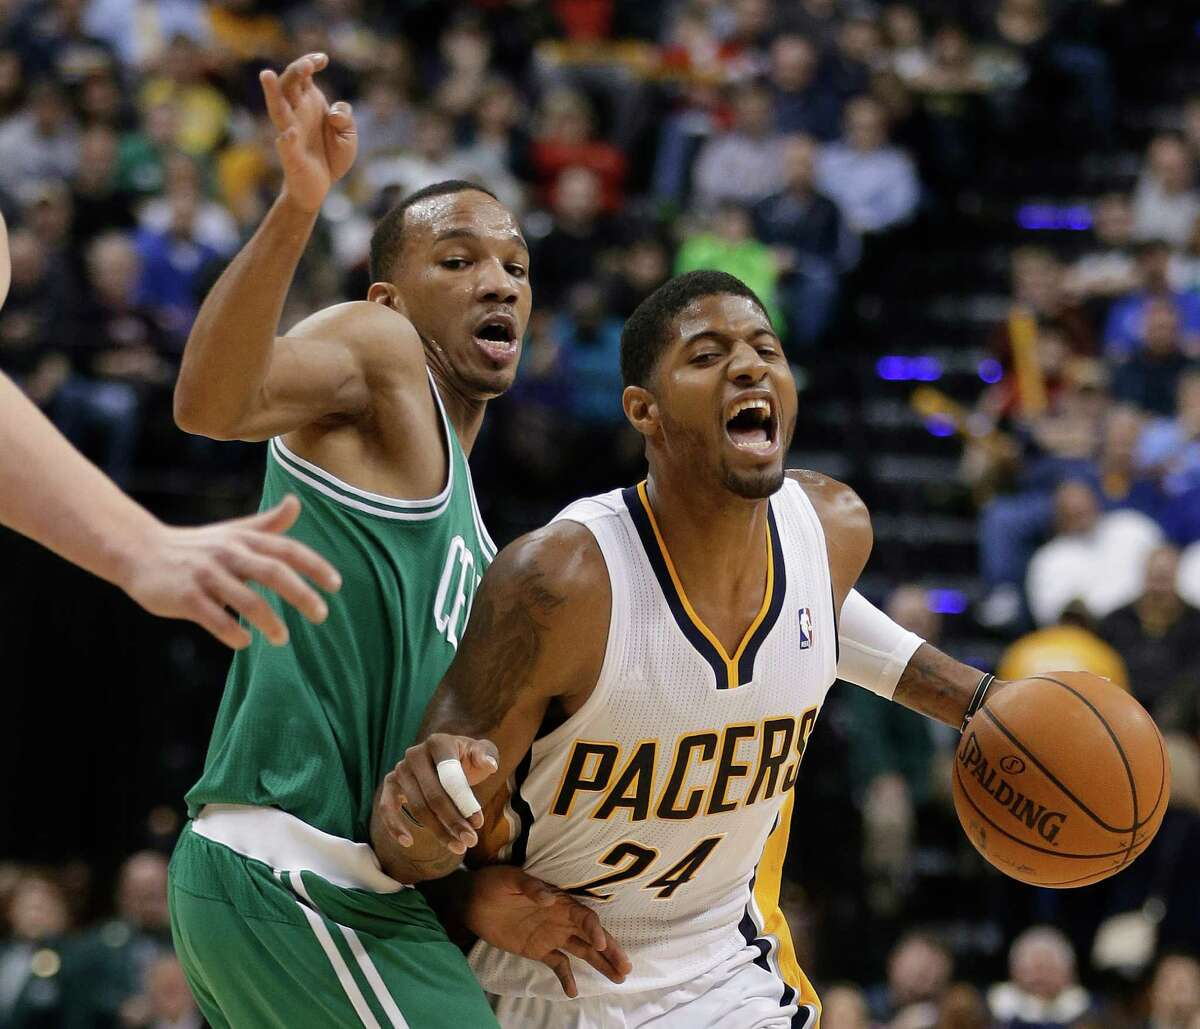 Indiana Pacers' Paul George (24) goes to the basket past Boston Celtics' Jeff Green (8) during the second half of an NBA basketball game Sunday, Dec. 22, 2013, in Indianapolis. Indiana defeated Boston 106-79. (AP Photo/Darron Cummings) ORG XMIT: NAF109